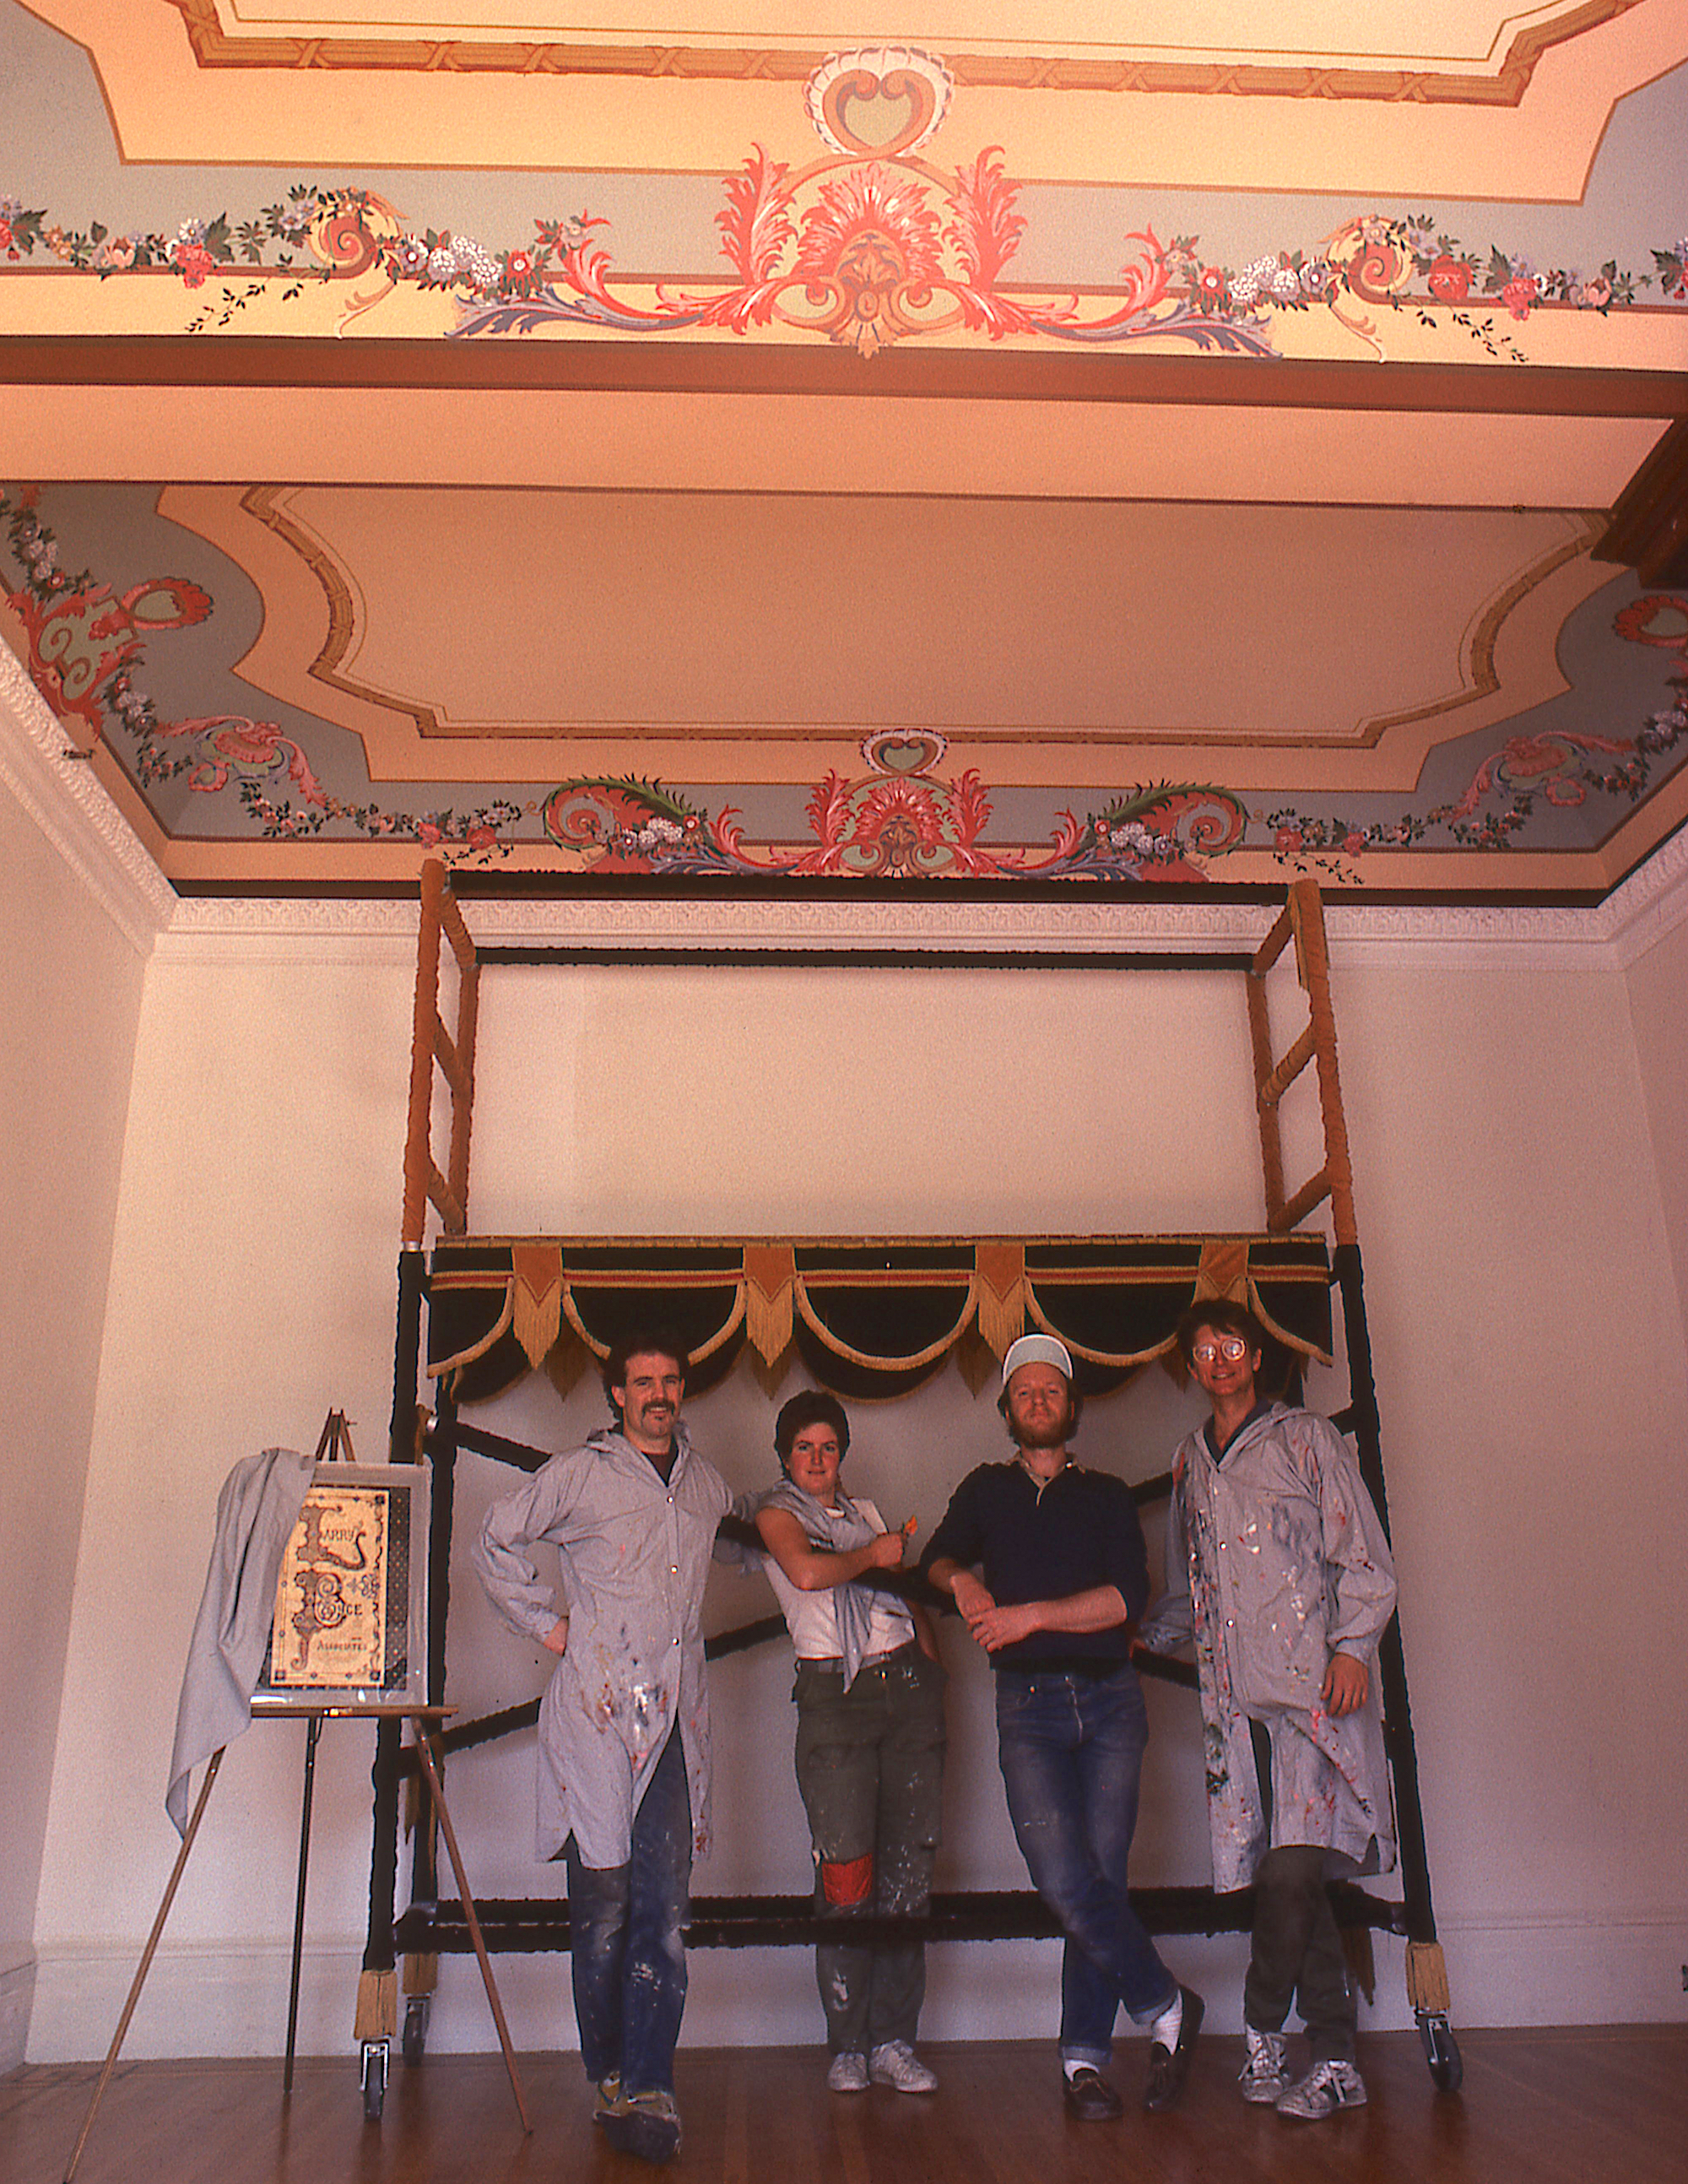 Painting the Archbishop of San Francisco's mansion. From left: Ken Huse, Emma Wright, Tom Ciesla, George Zaffle.